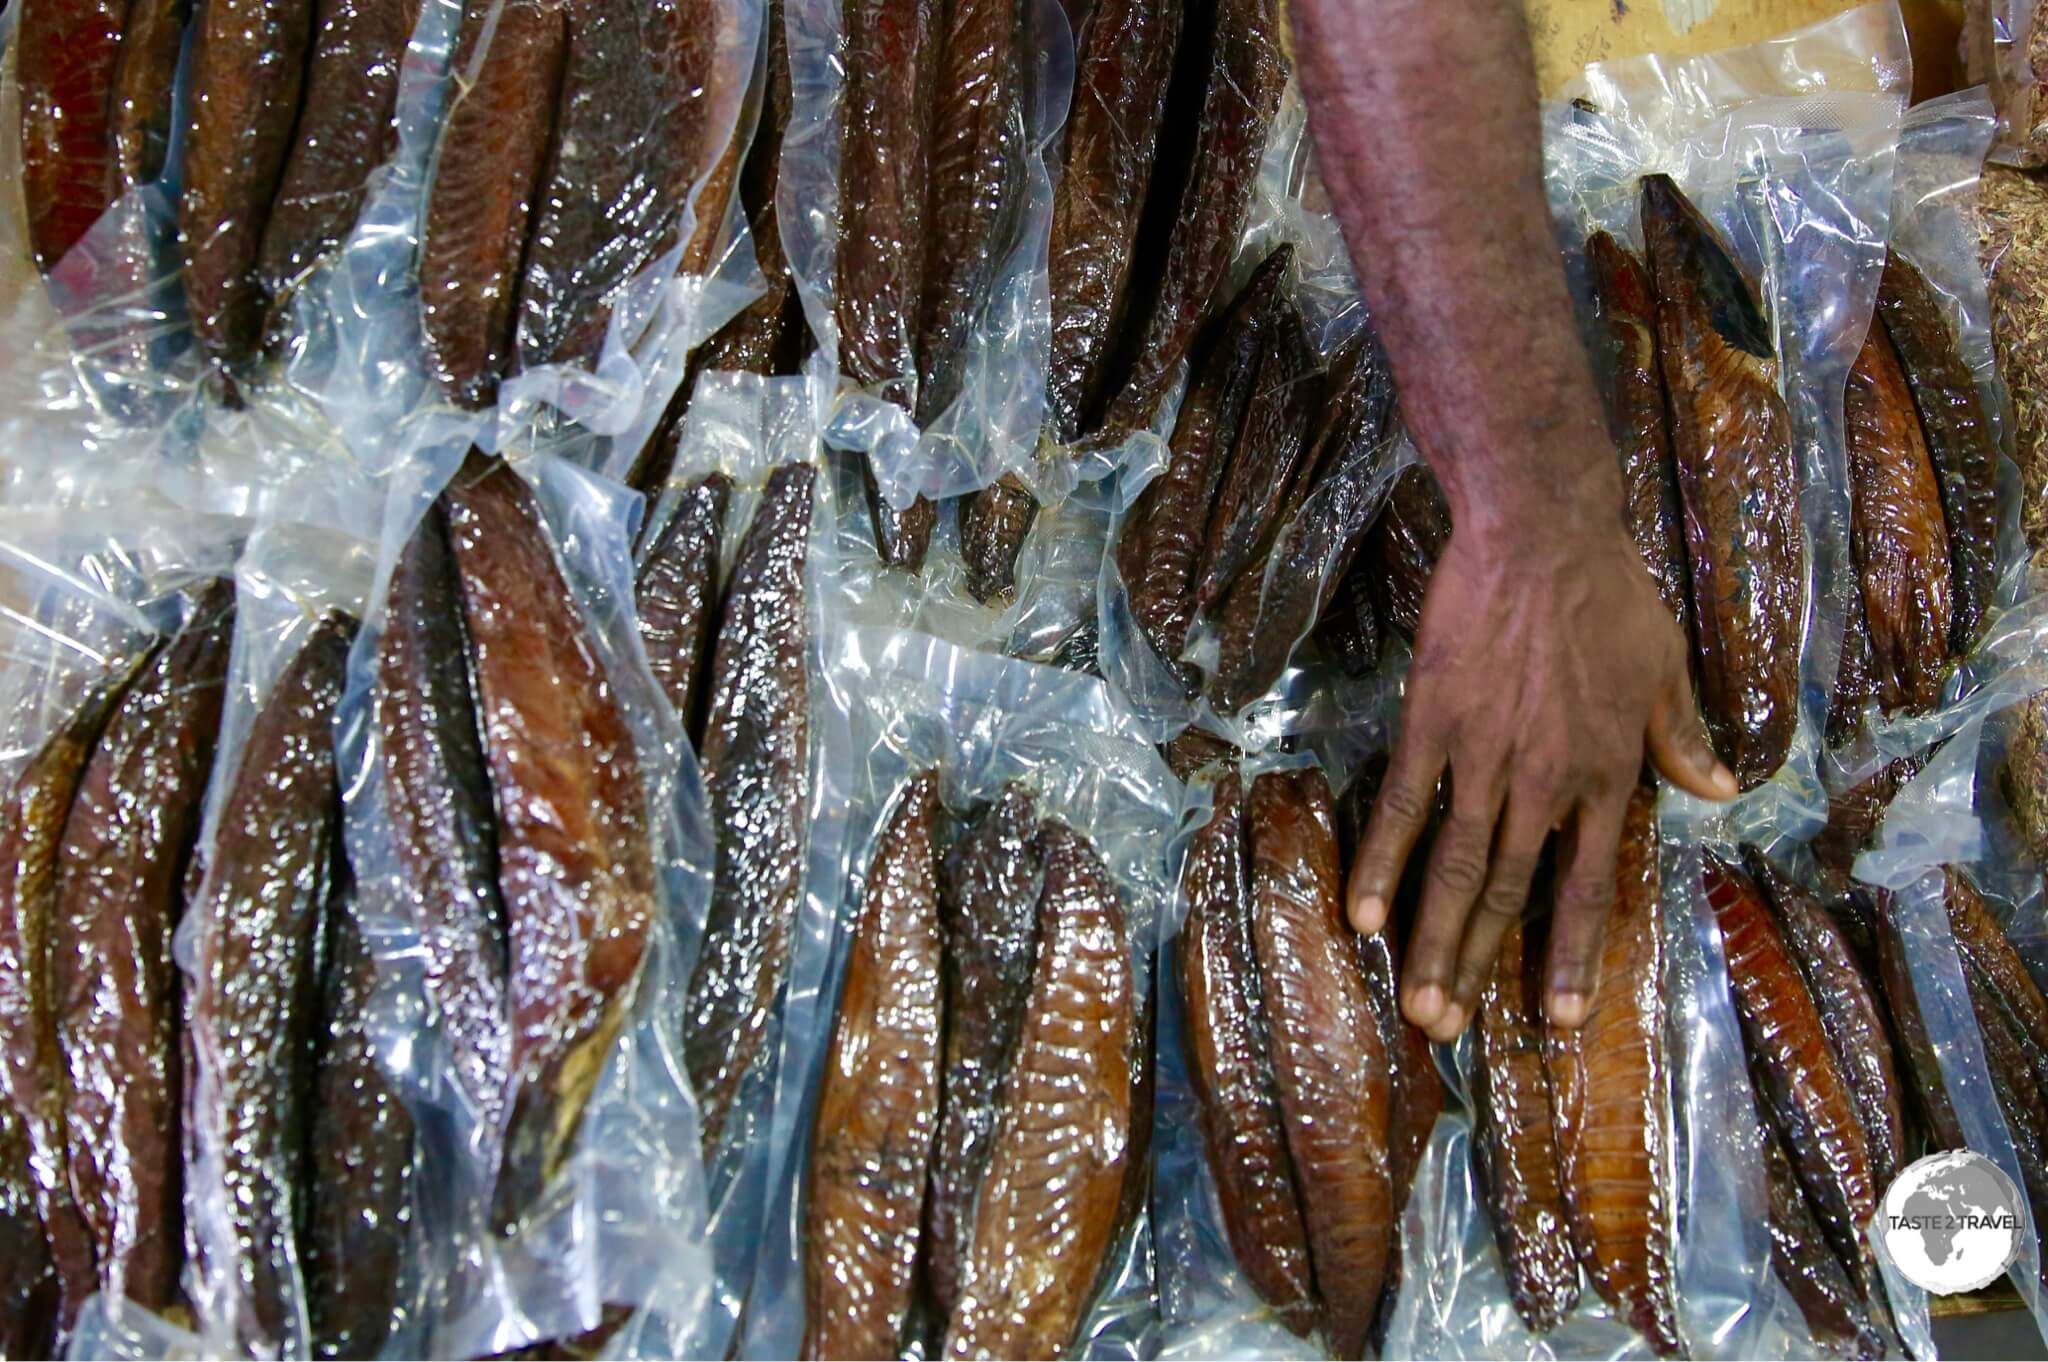 A specialty of the Maldives - Dhivehi is cured tuna fish.